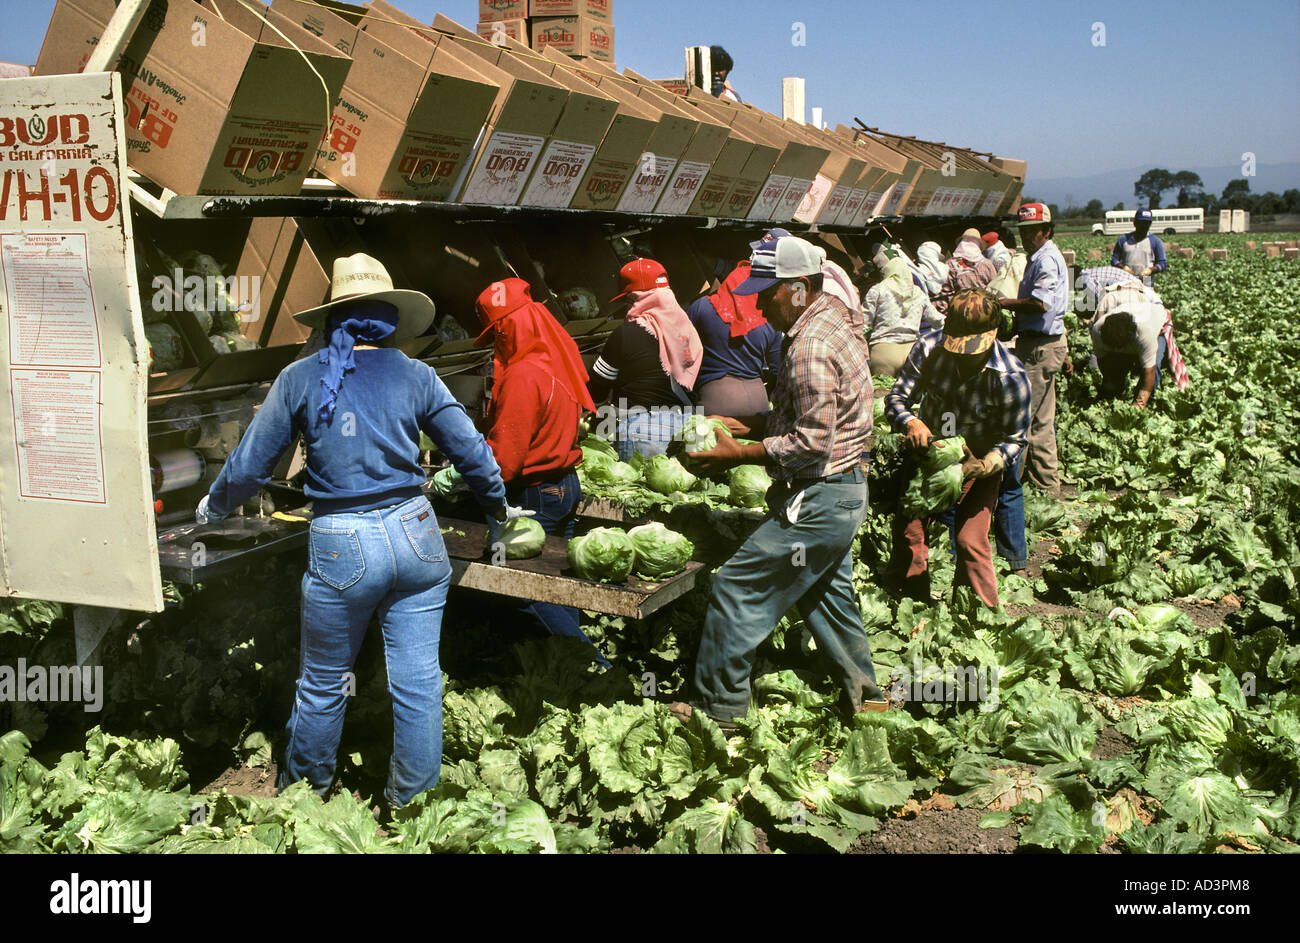 Migrant Laborers Picking Lettuce San Jaquin Valley California - Stock Image